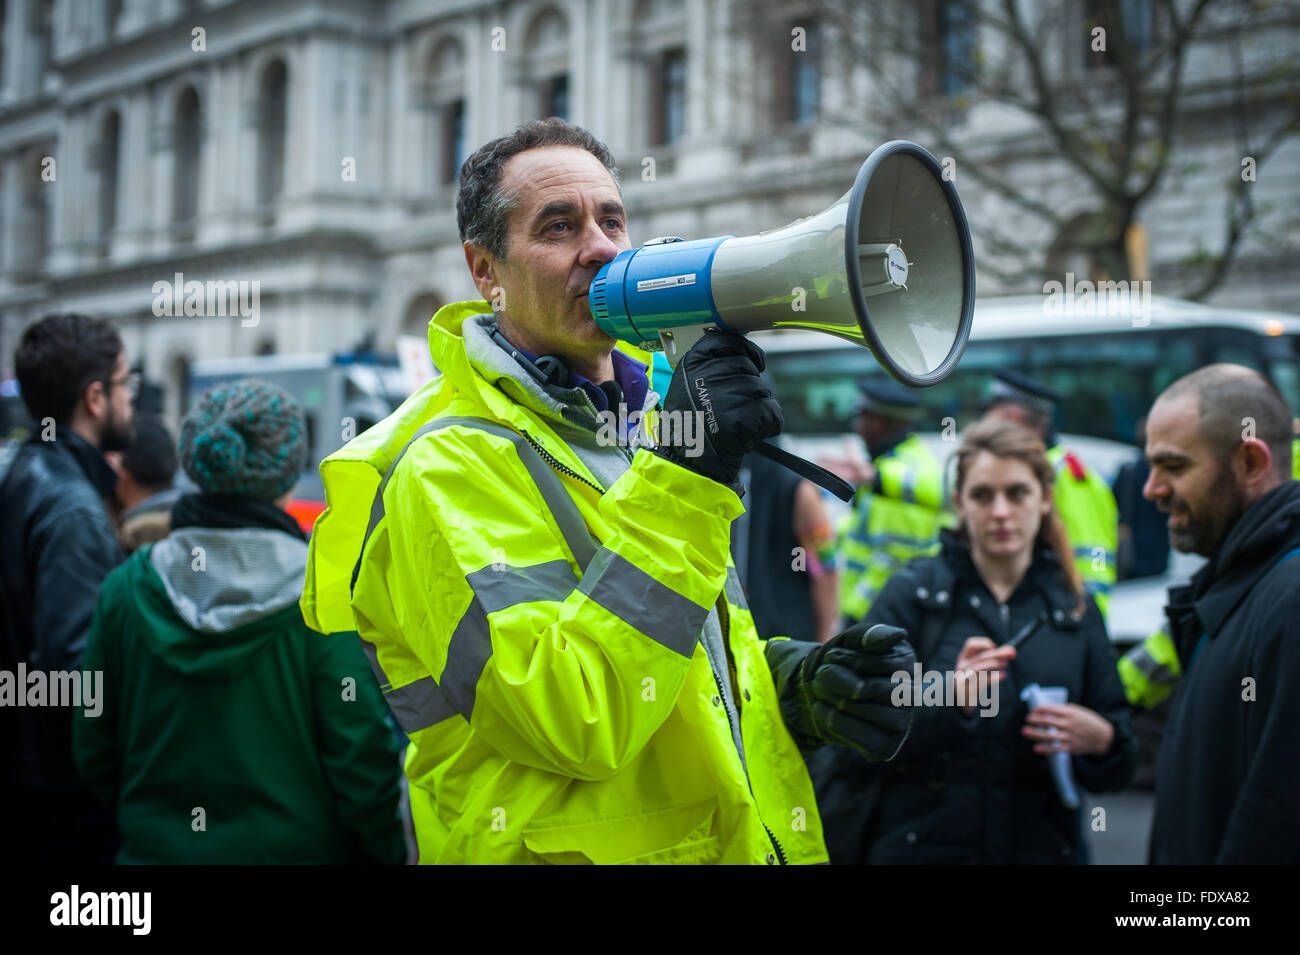 Activist Danny Shine against Westbrook Investment's plan to evict New Era Estate families, London - Stock Image